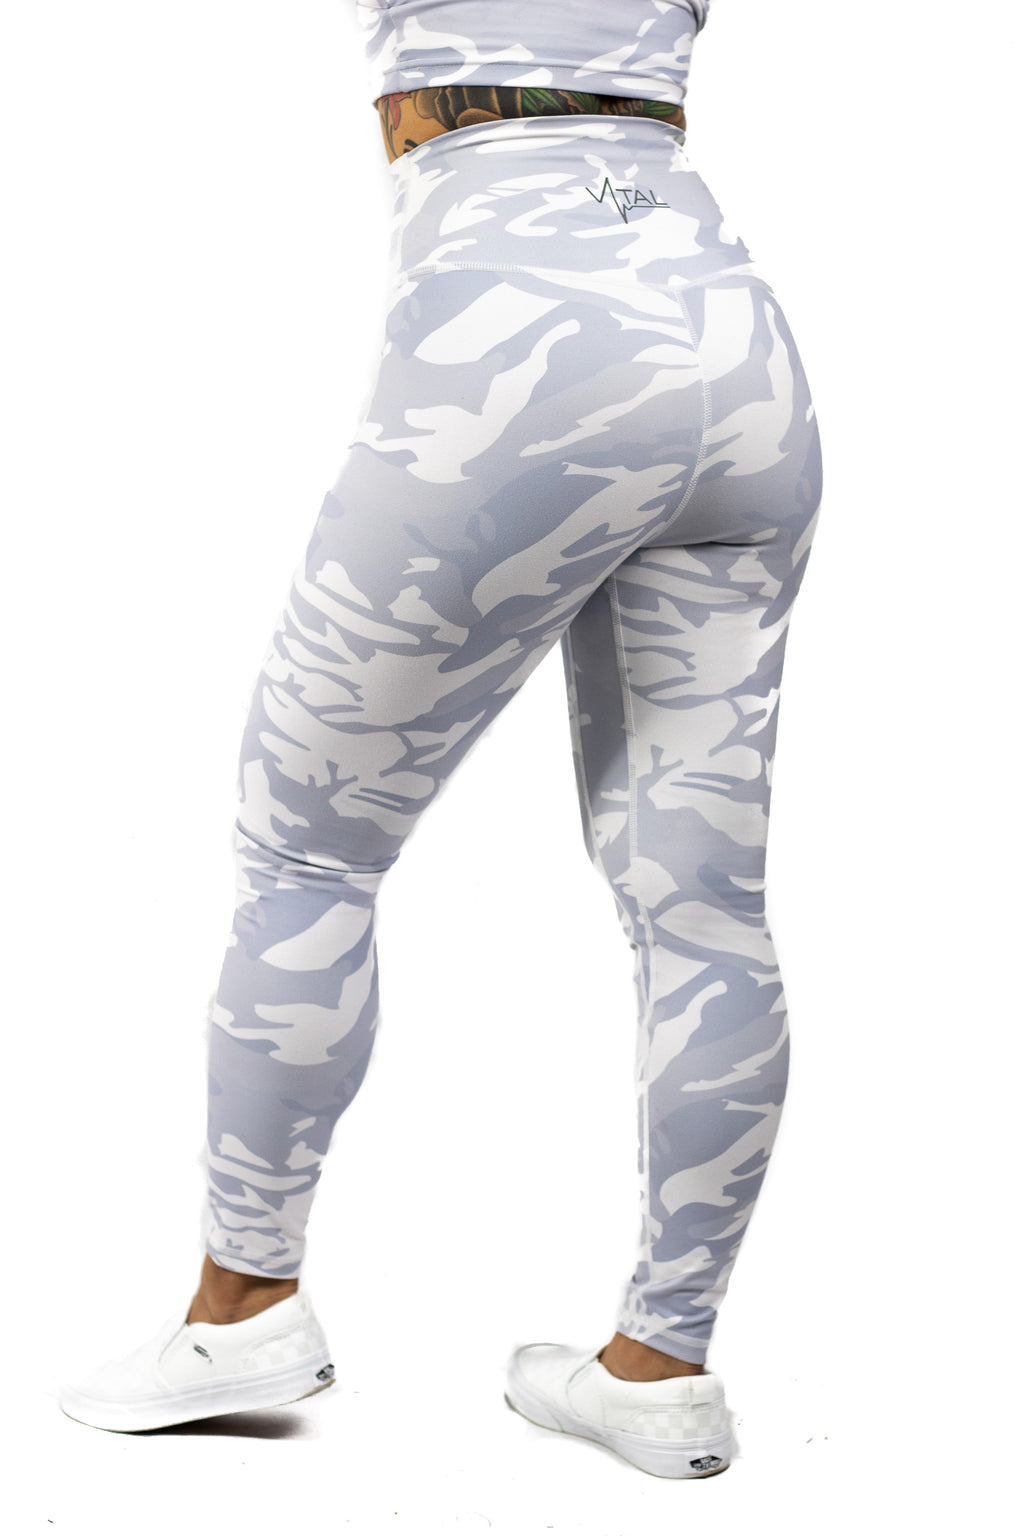 Plush V2 Combat High Waisted Workout White Camo Leggings Women